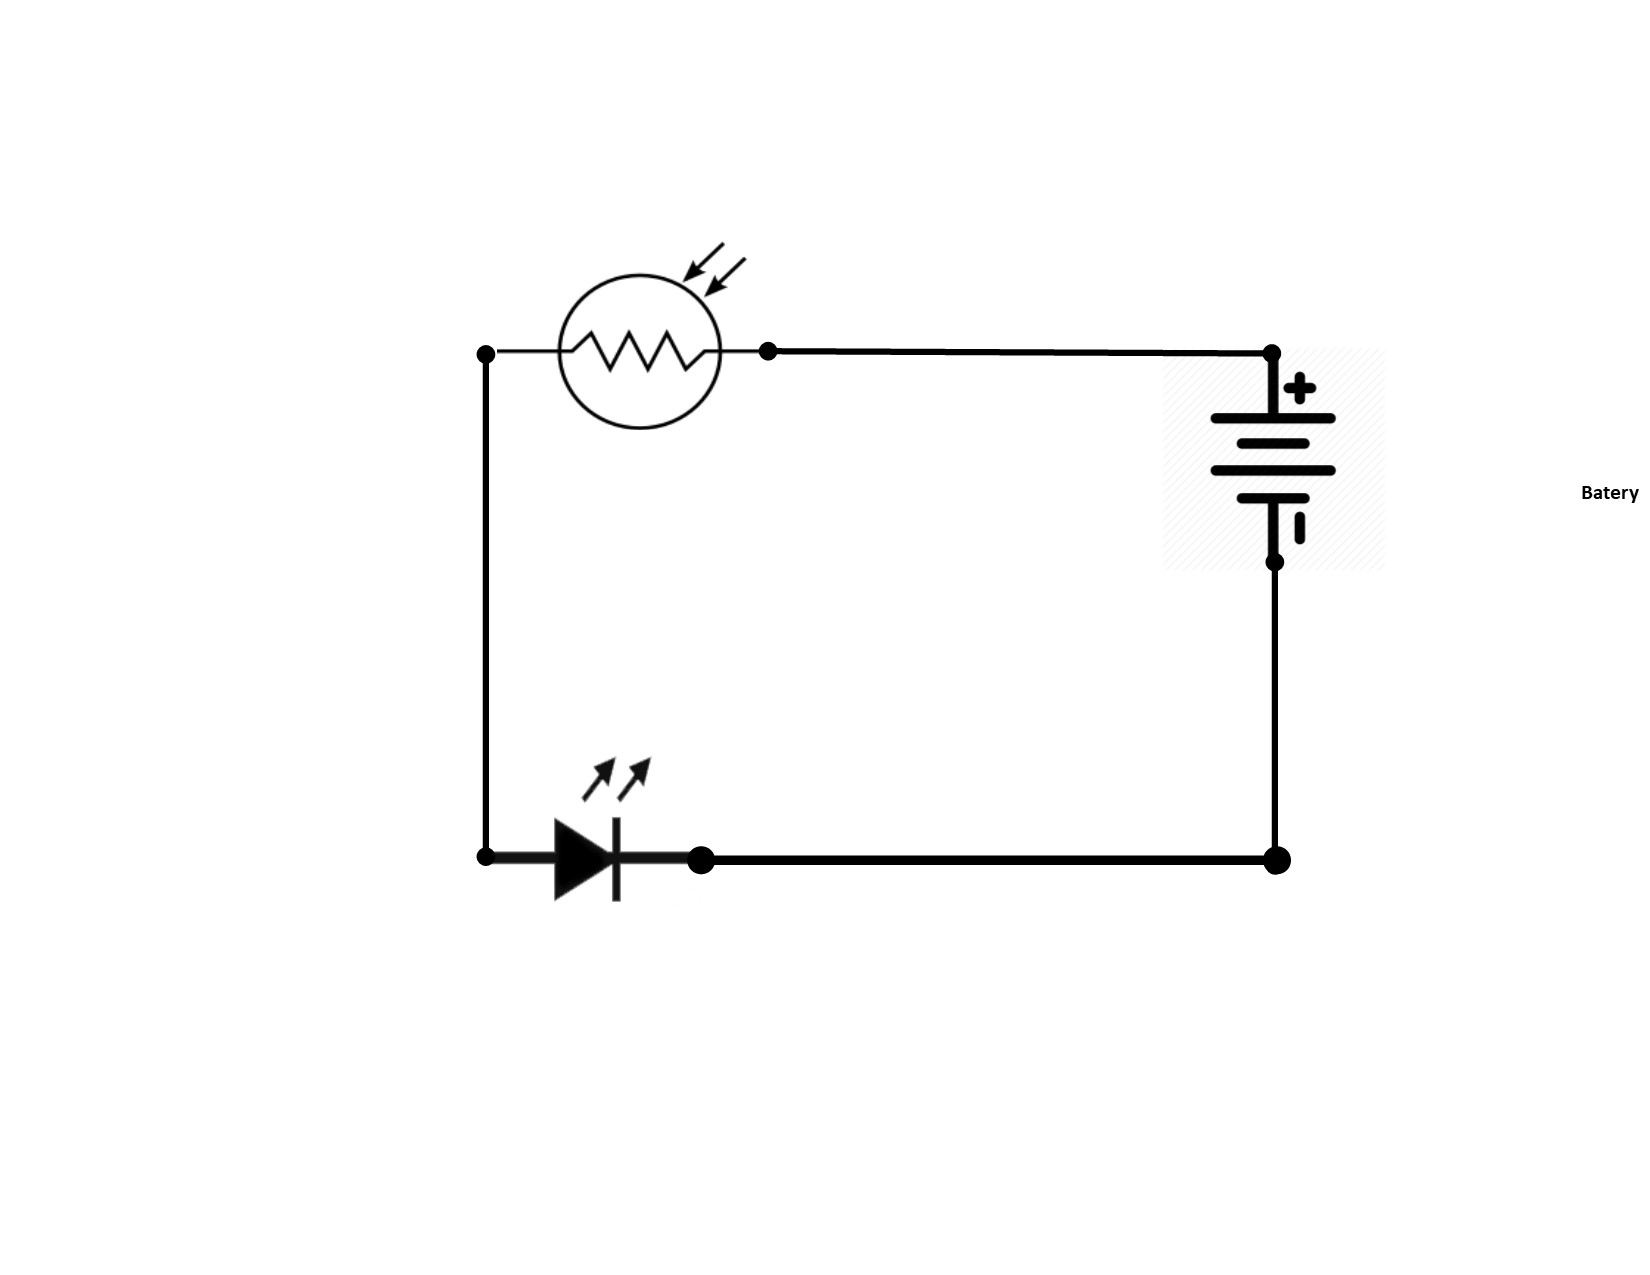 Basic Of Resistor For Beginners Electronics Video Course Urdu Ldr Circuit Diagram Project With Trimmer And Photo